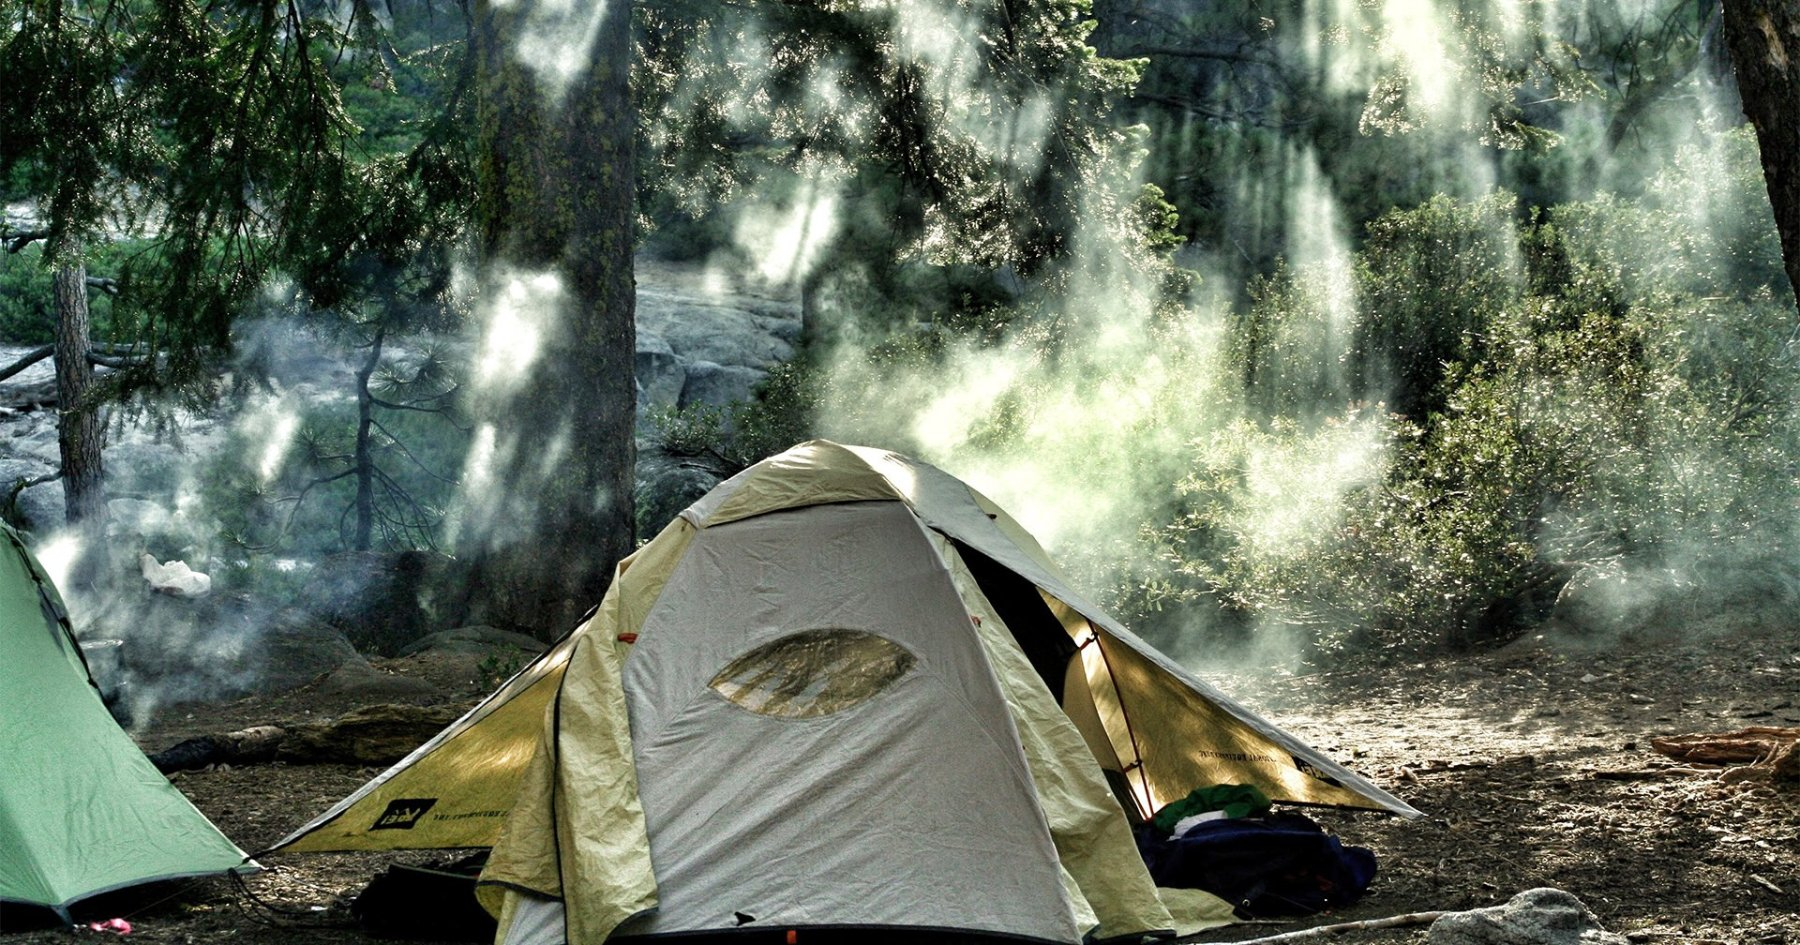 Netflix for Camping Gear Has Arrived